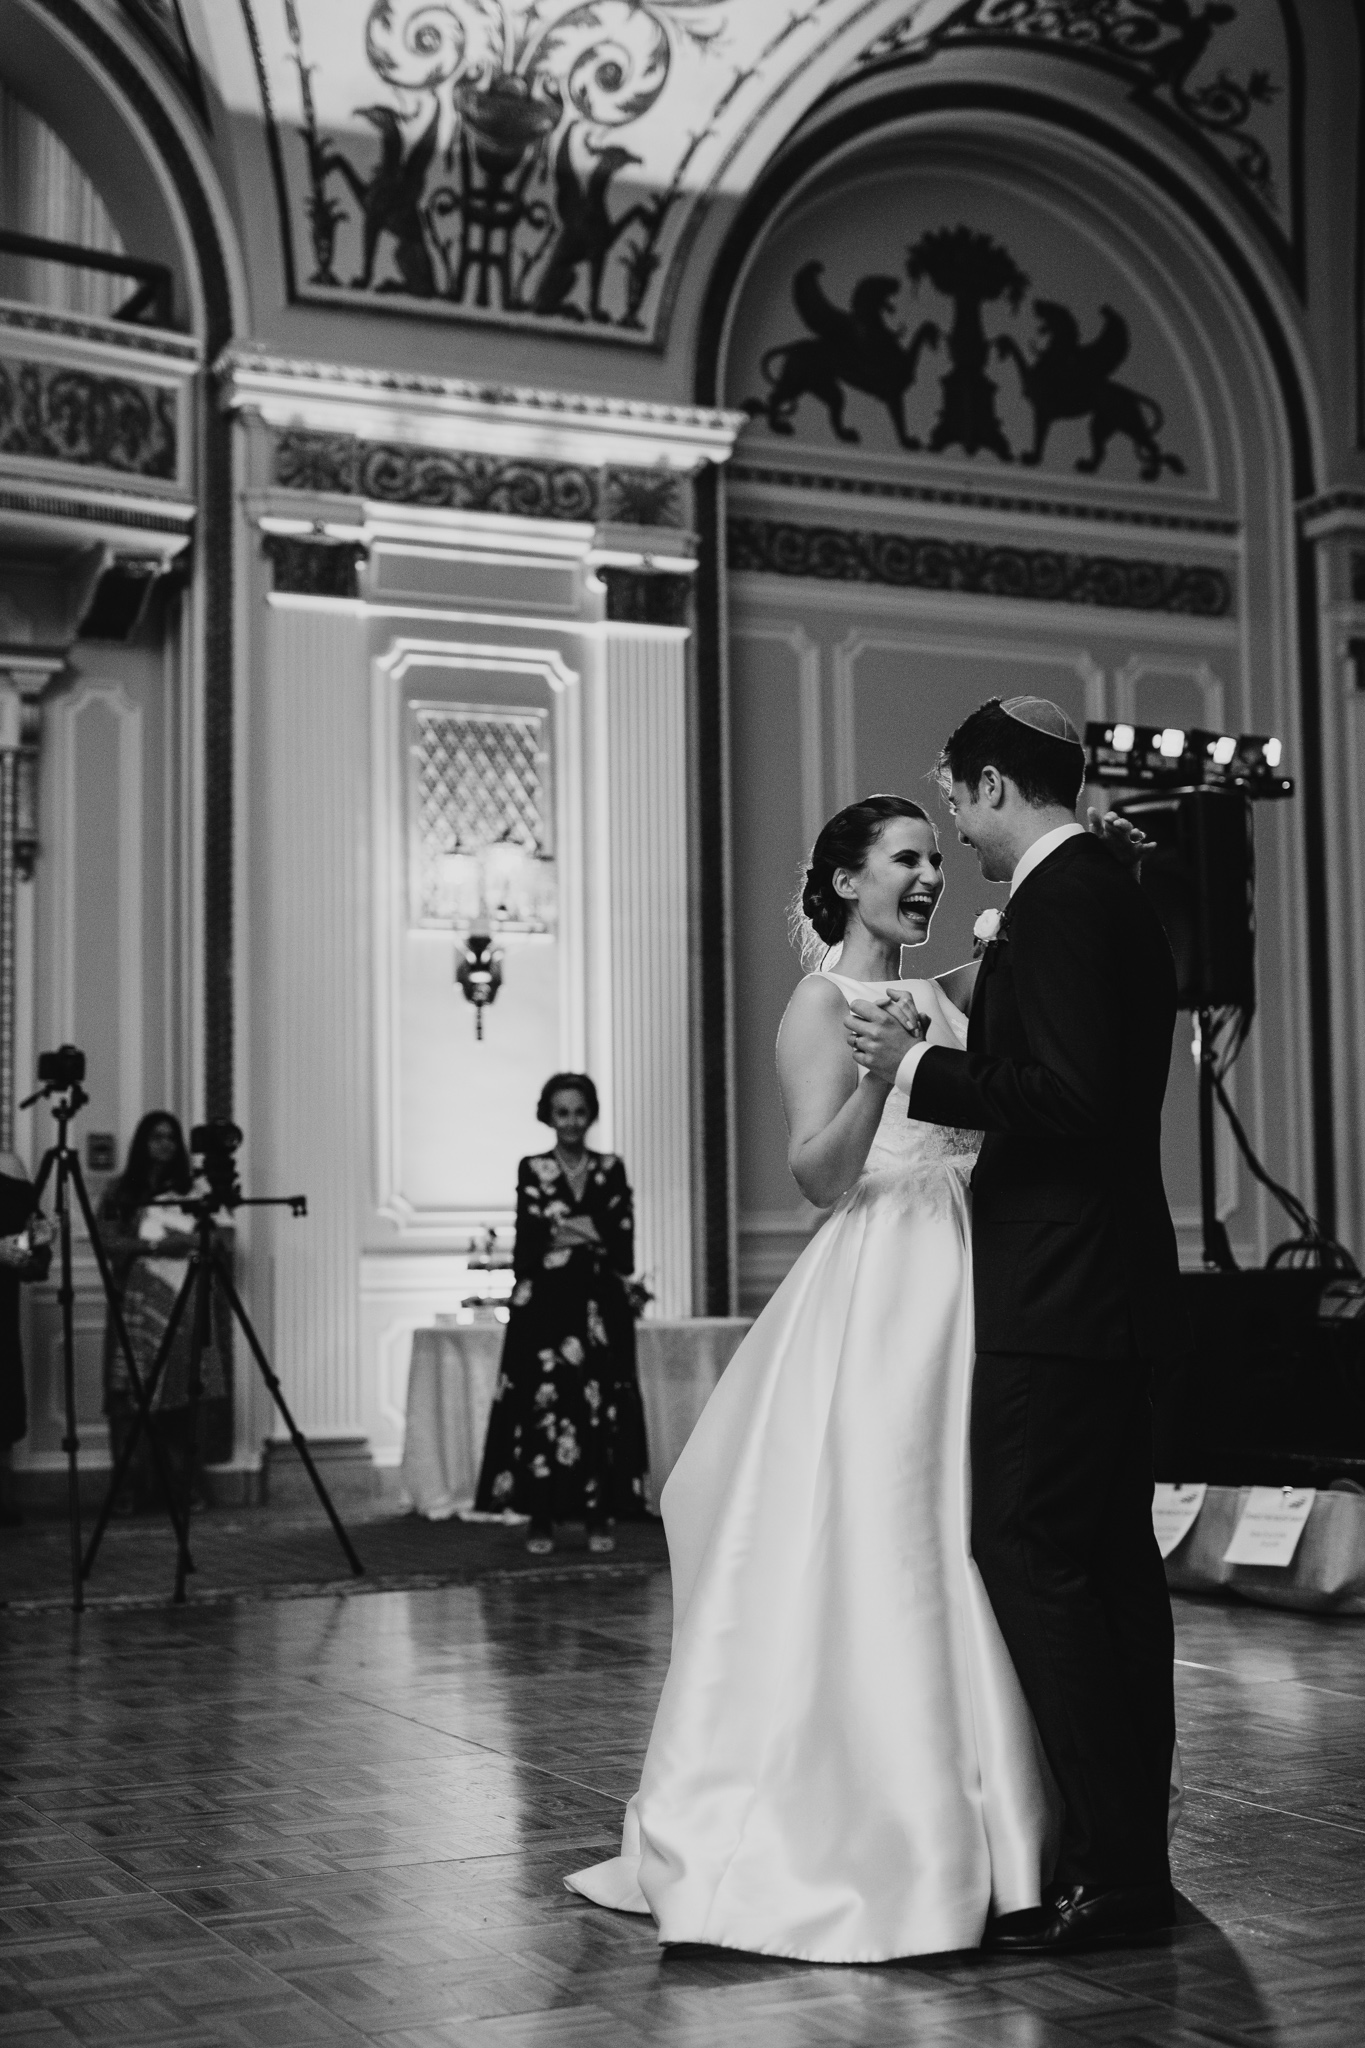 773-WEB-Jonathan-Kuhn-Photography-Elana-Eden-Wedding-2017.jpg